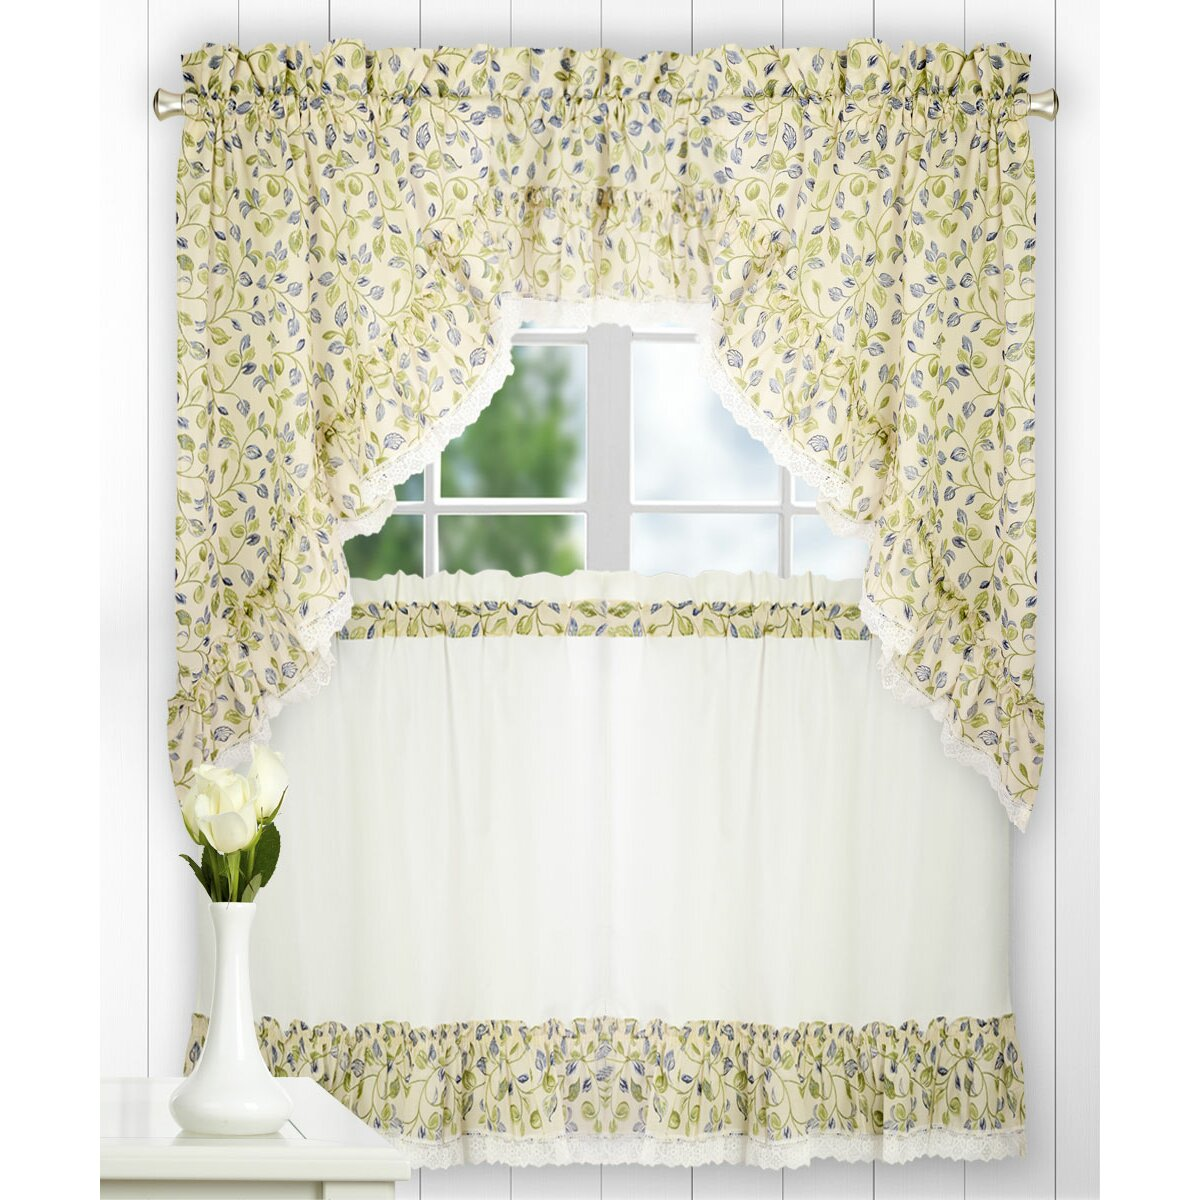 "Ellis Curtain Clarice Ruffled Swag 58"" Curtain Valance"